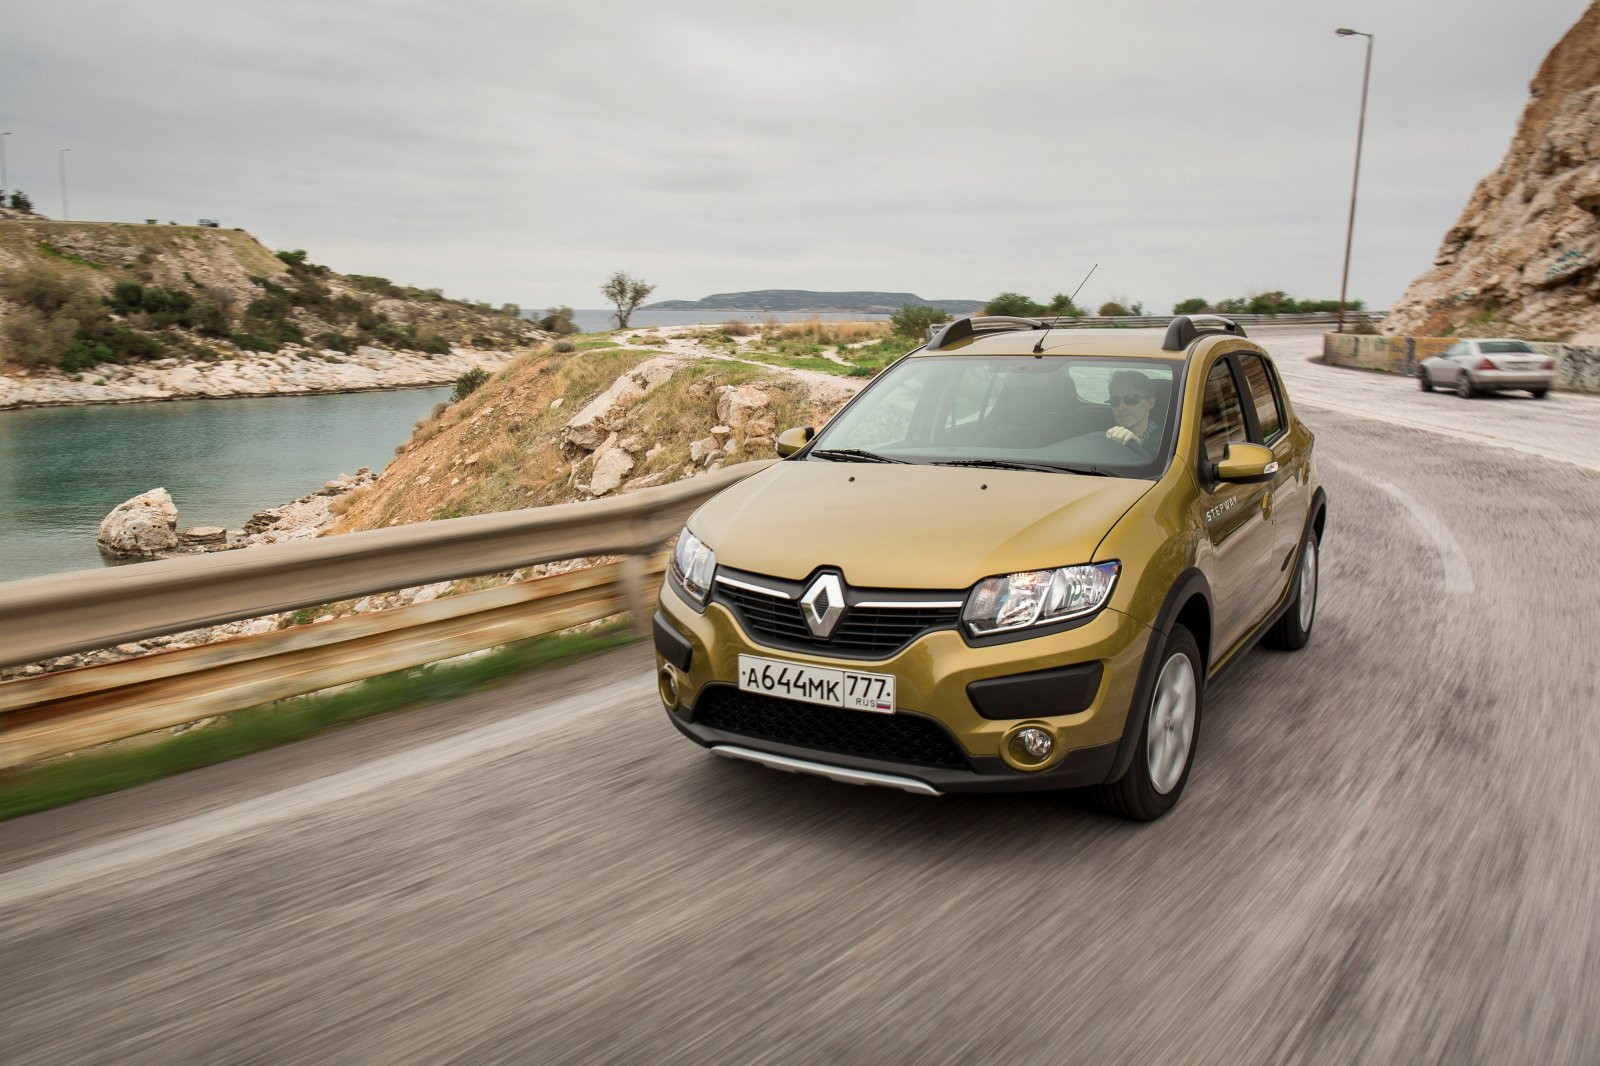 renault launches logan and sandero automatic versions in russia what about dacia autoevolution. Black Bedroom Furniture Sets. Home Design Ideas